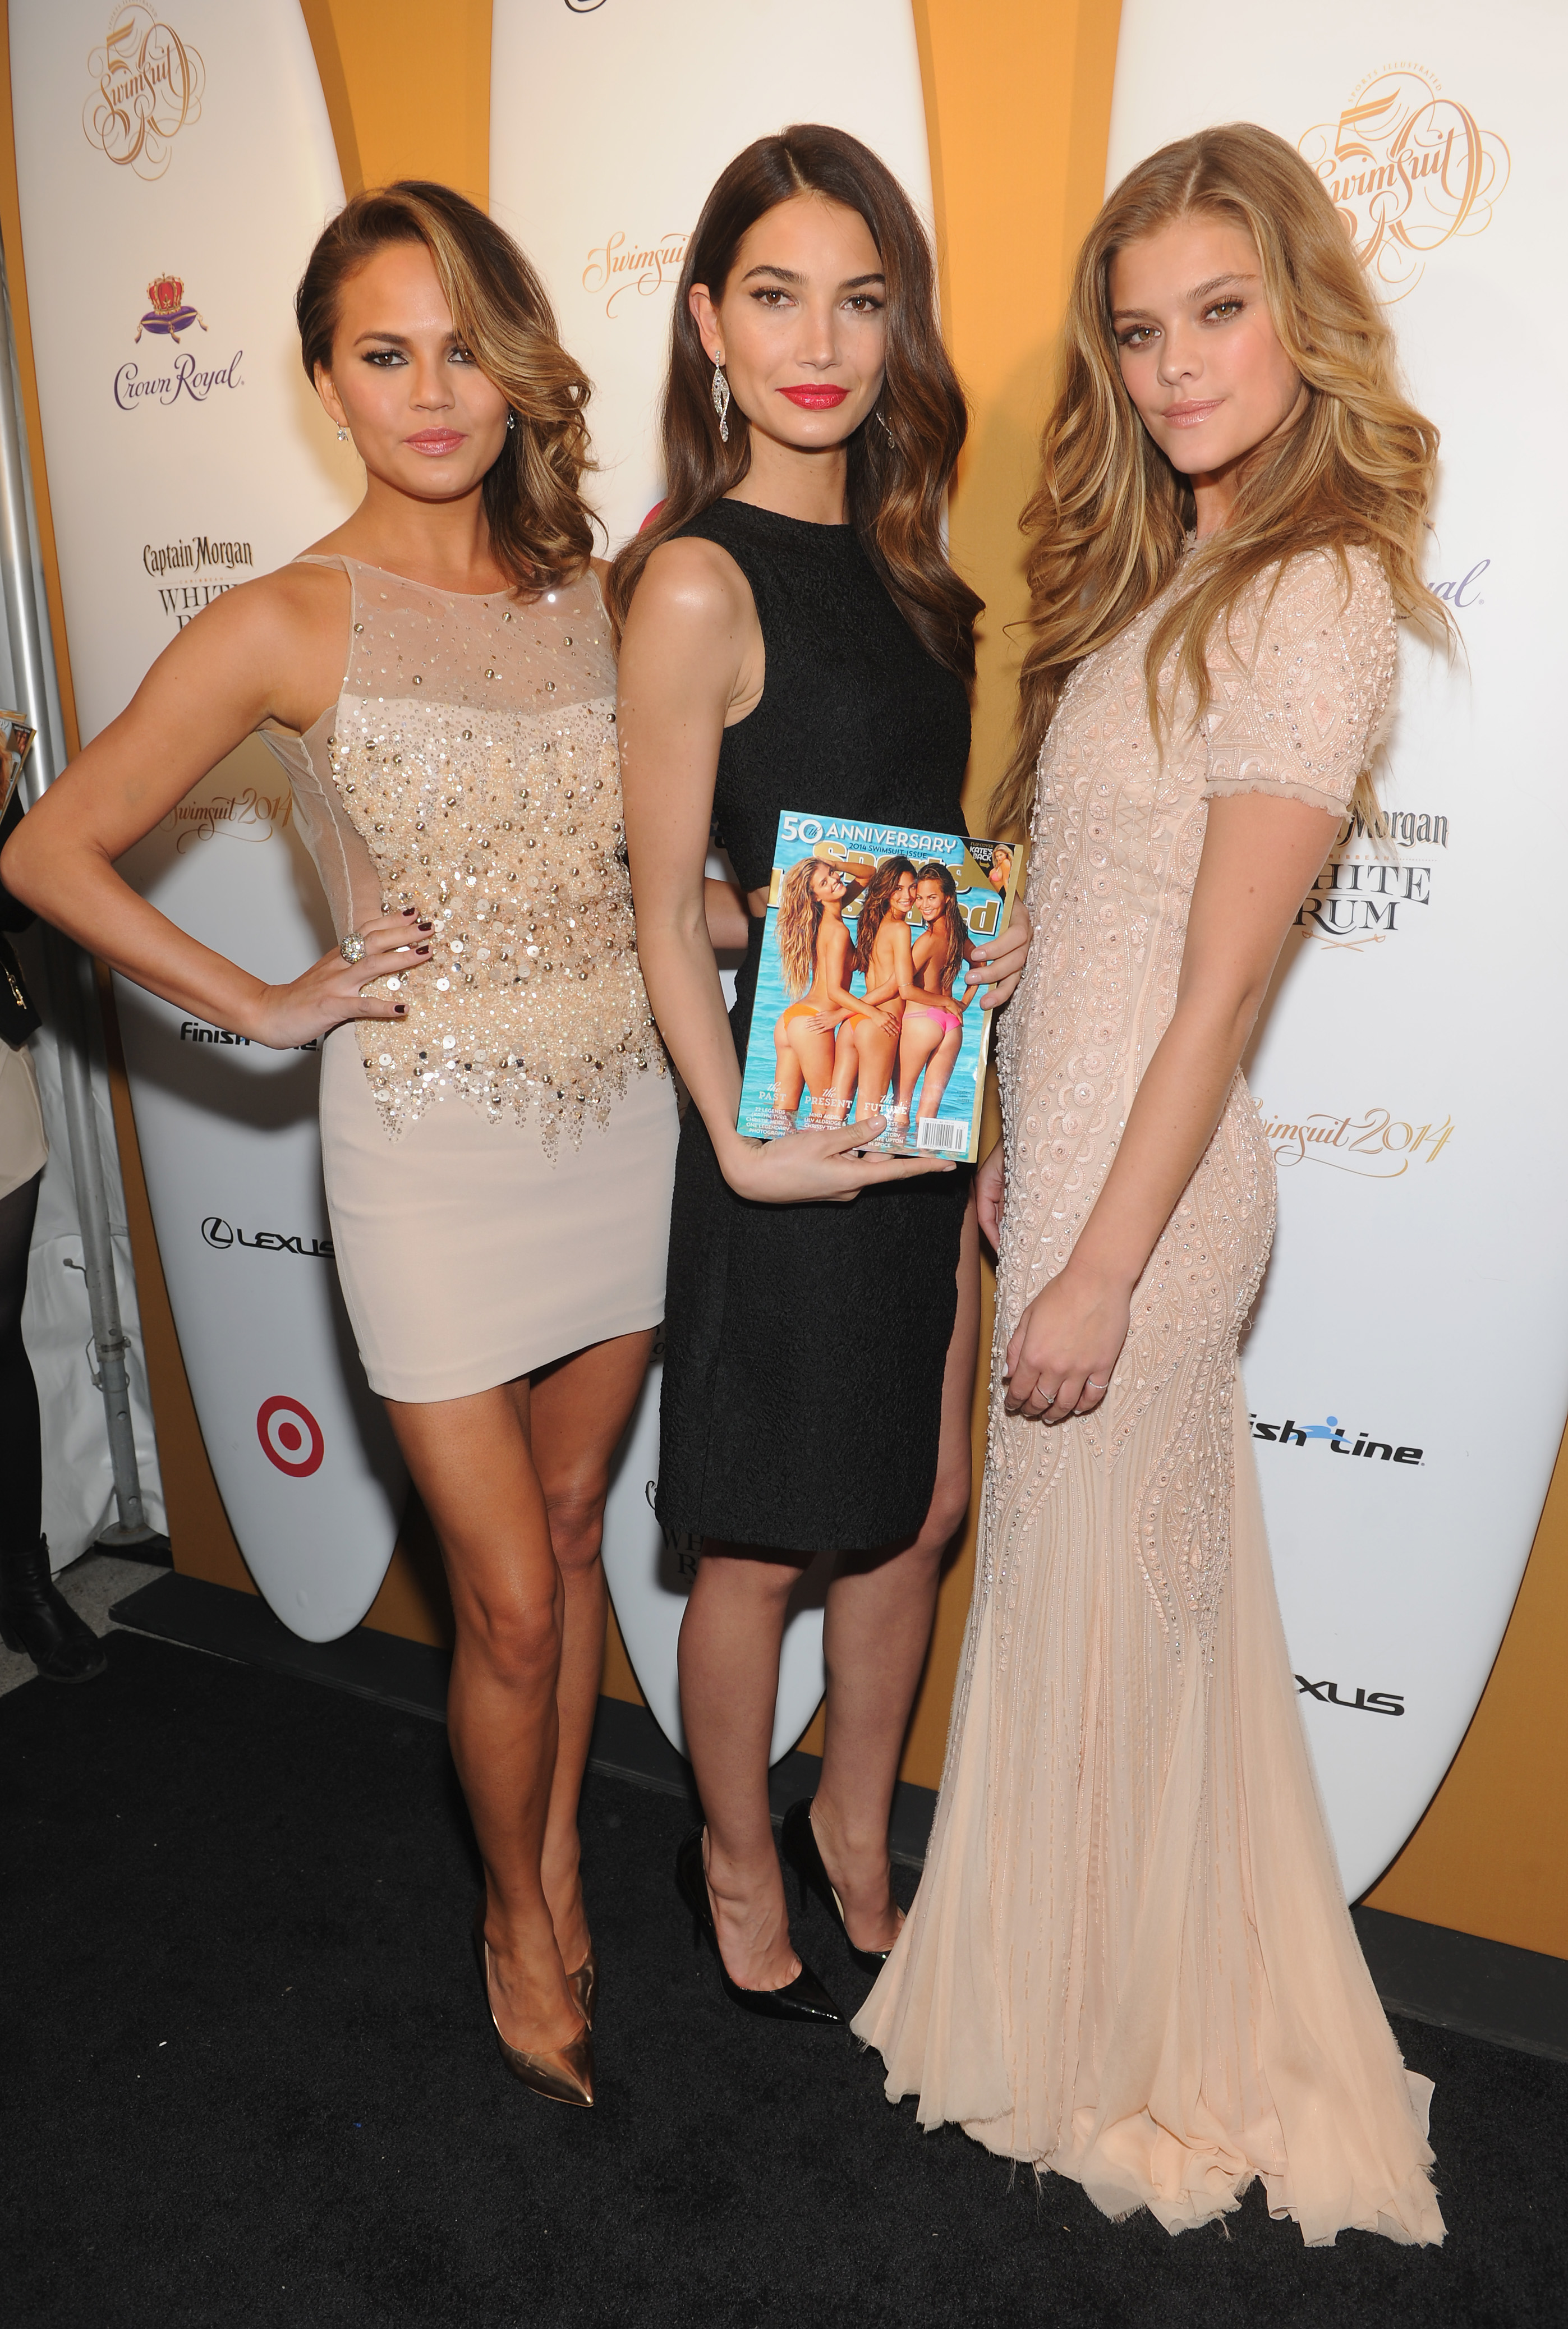 Sports Illustrated Swimsuit Celebrates 50 Years Of Swim In NYC - Arrivals